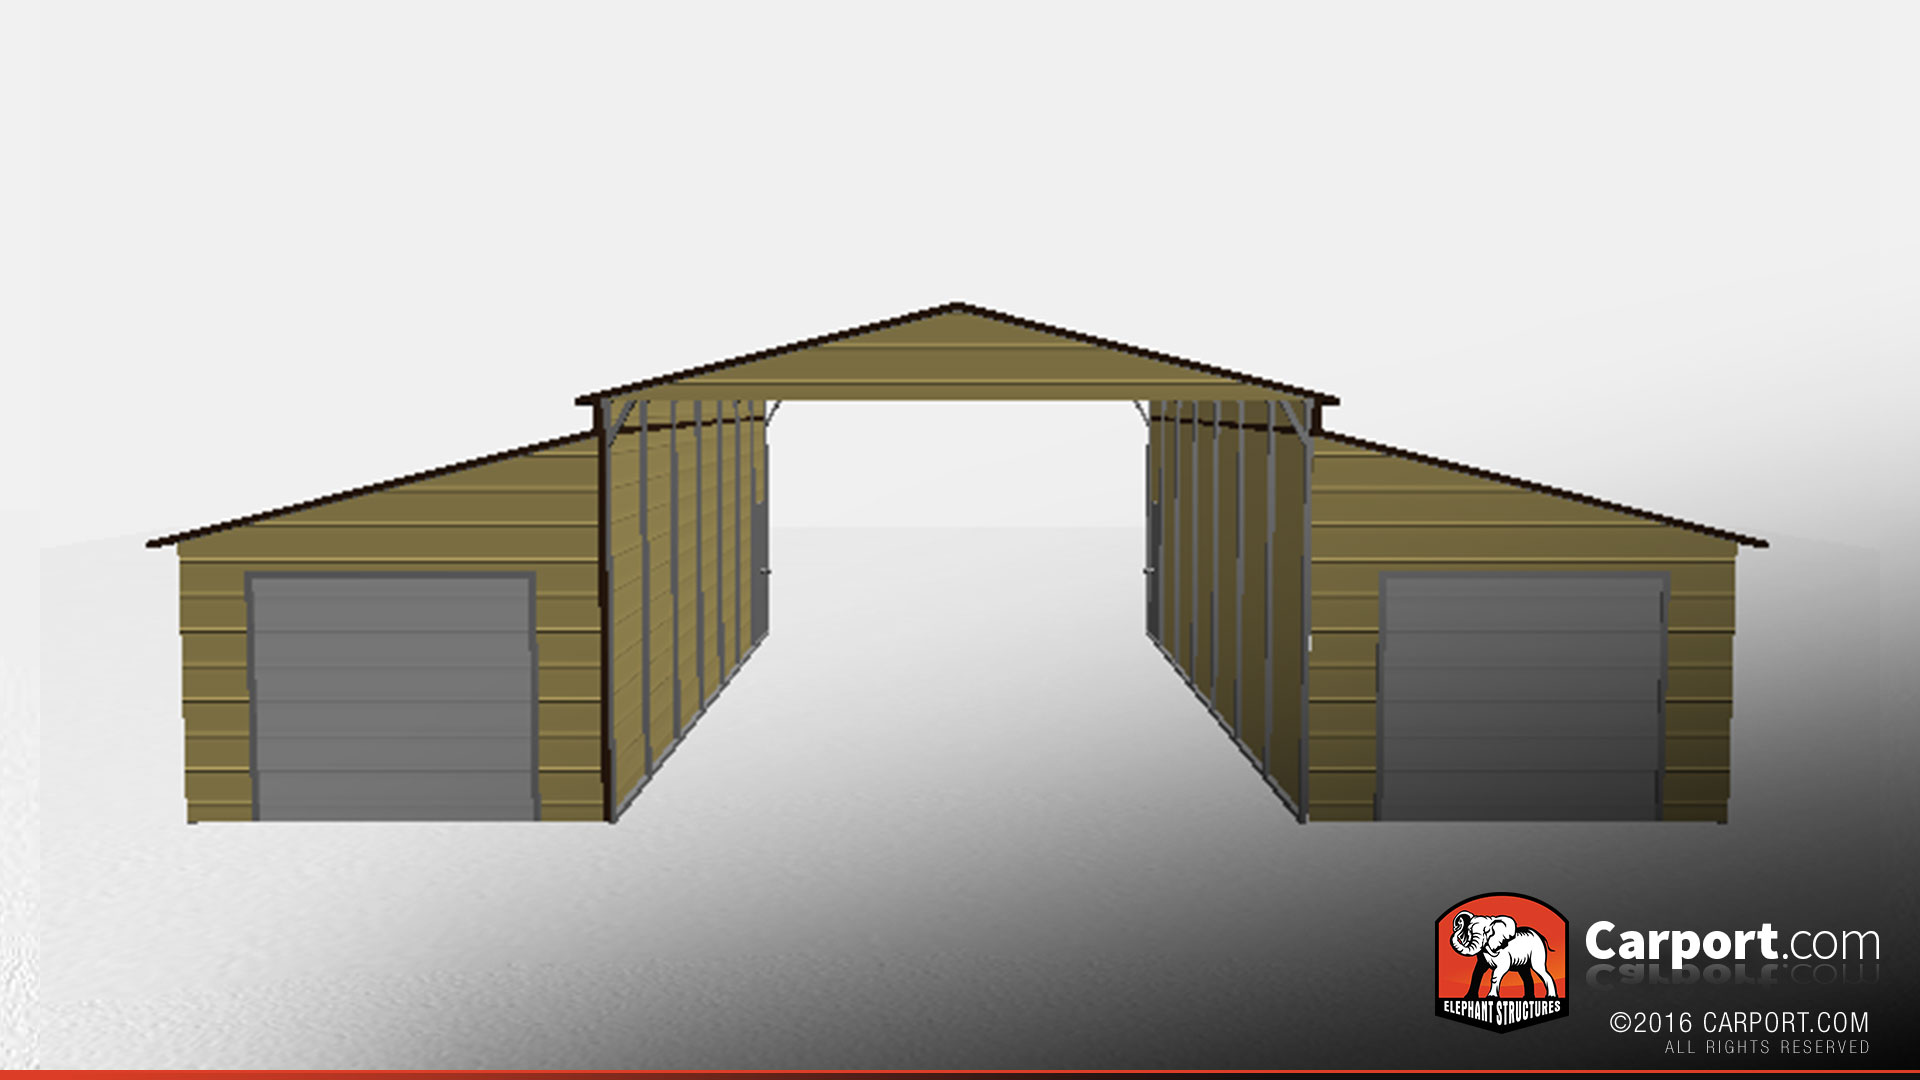 30 39 x 40 39 x 12 39 ridgeline barn with two garage doors for 30 x 40 carport